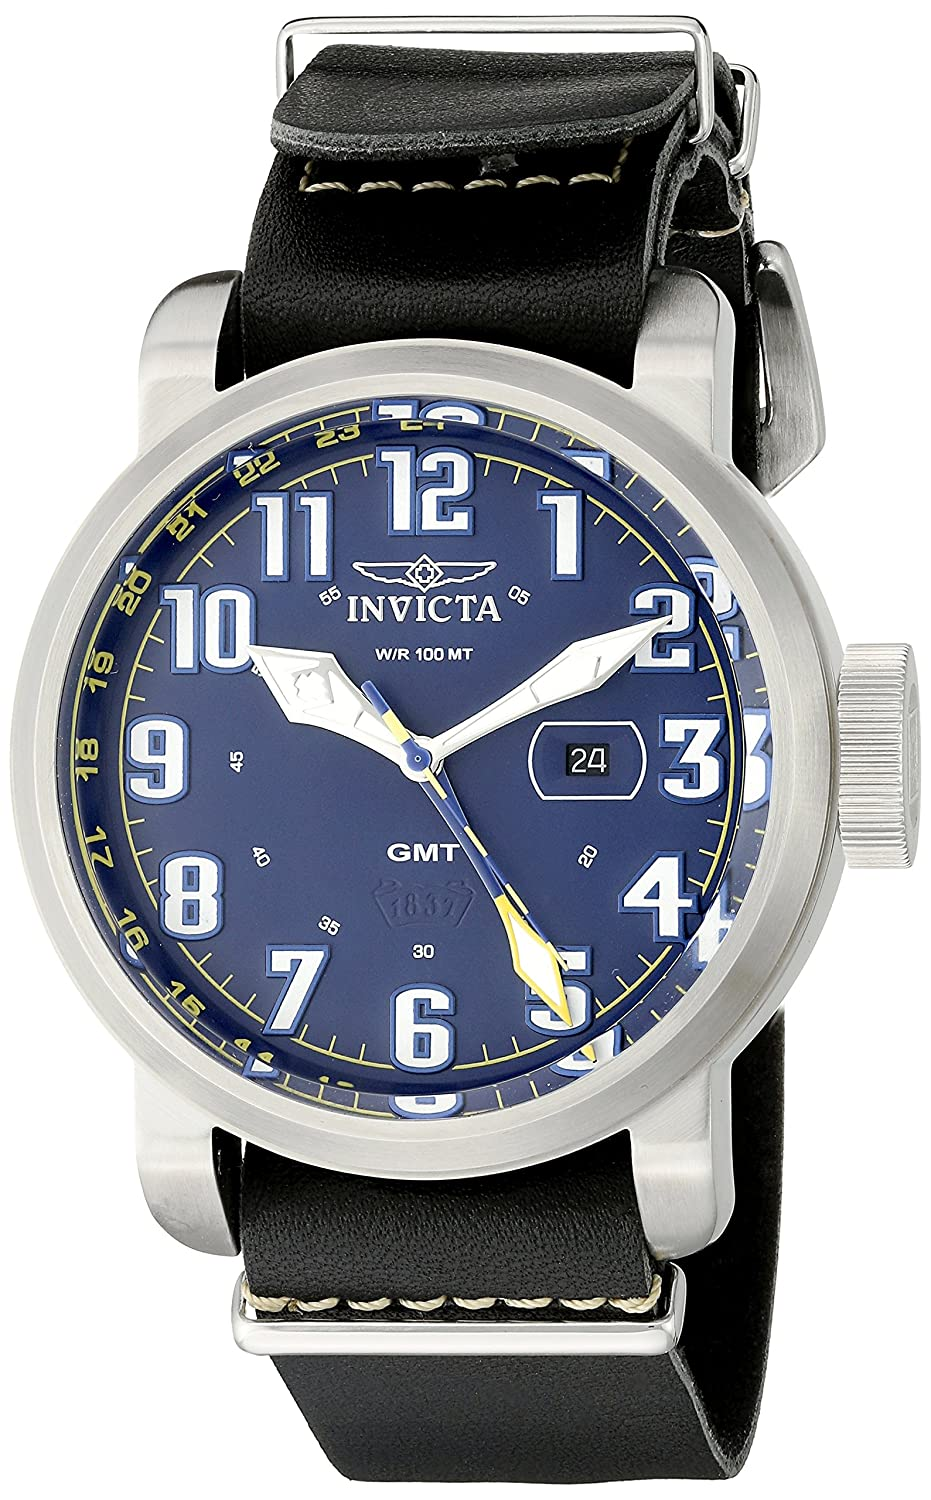 Amazon.com: Invicta Mens 18887 Aviator Analog Display Swiss Quartz Black Watch: Watches